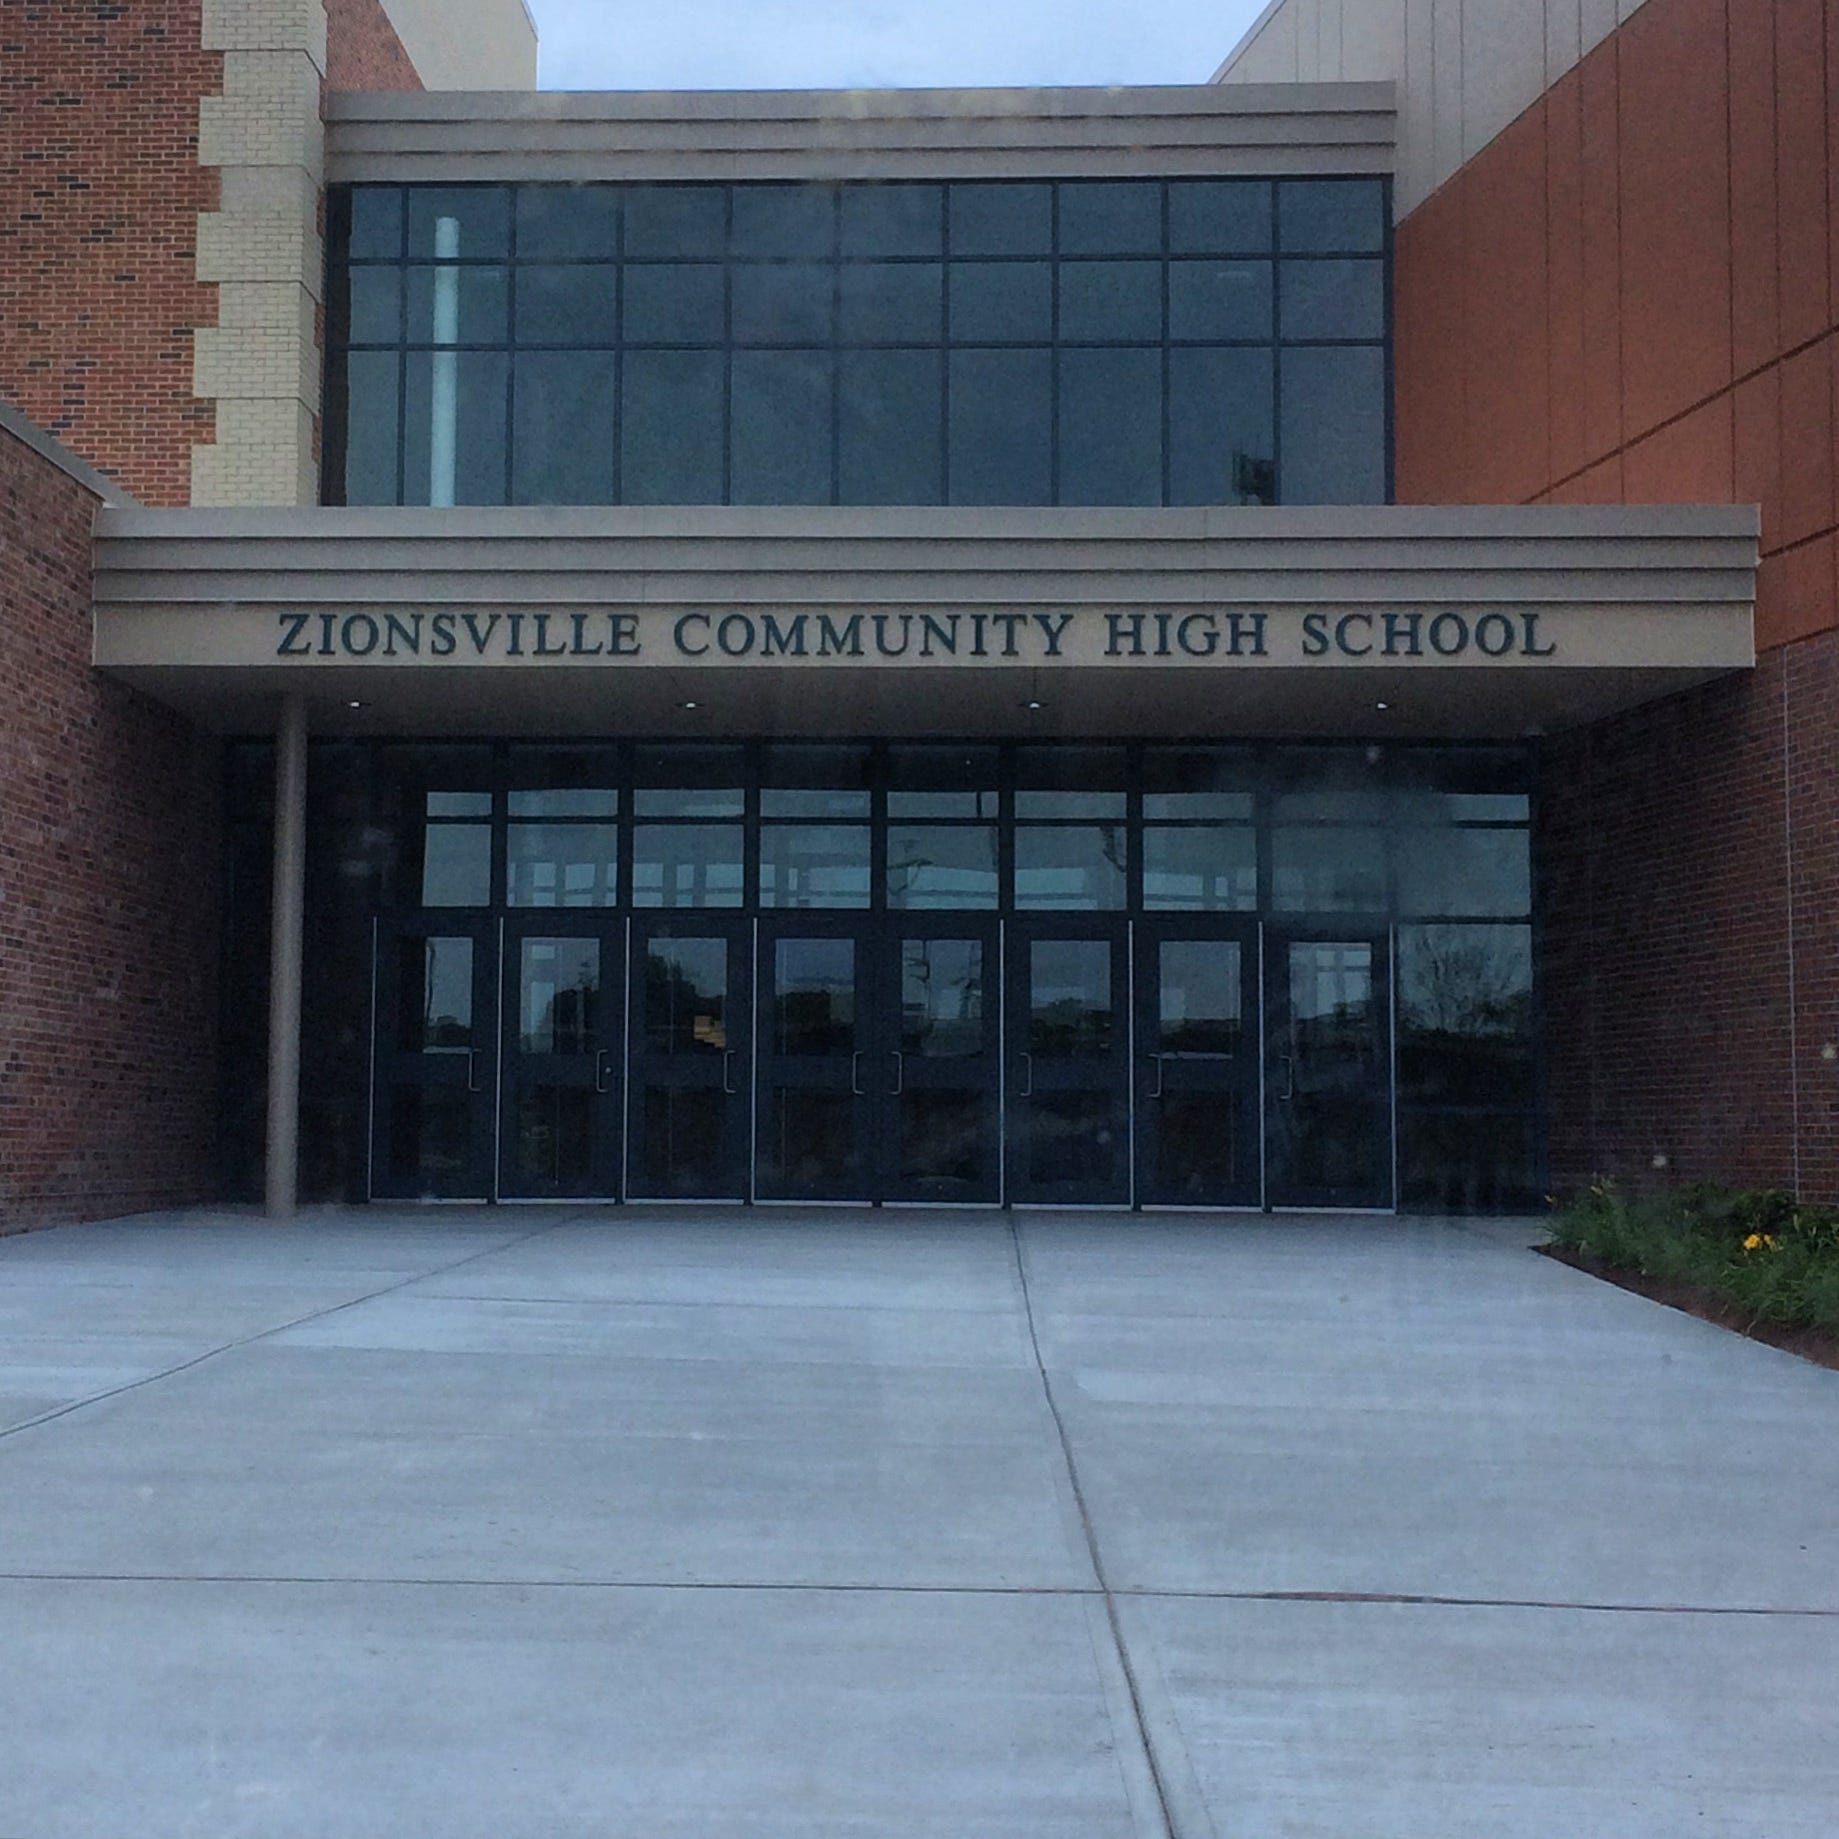 Zionsville investigates after students appear to perform Nazi salute in 'sickening' photo